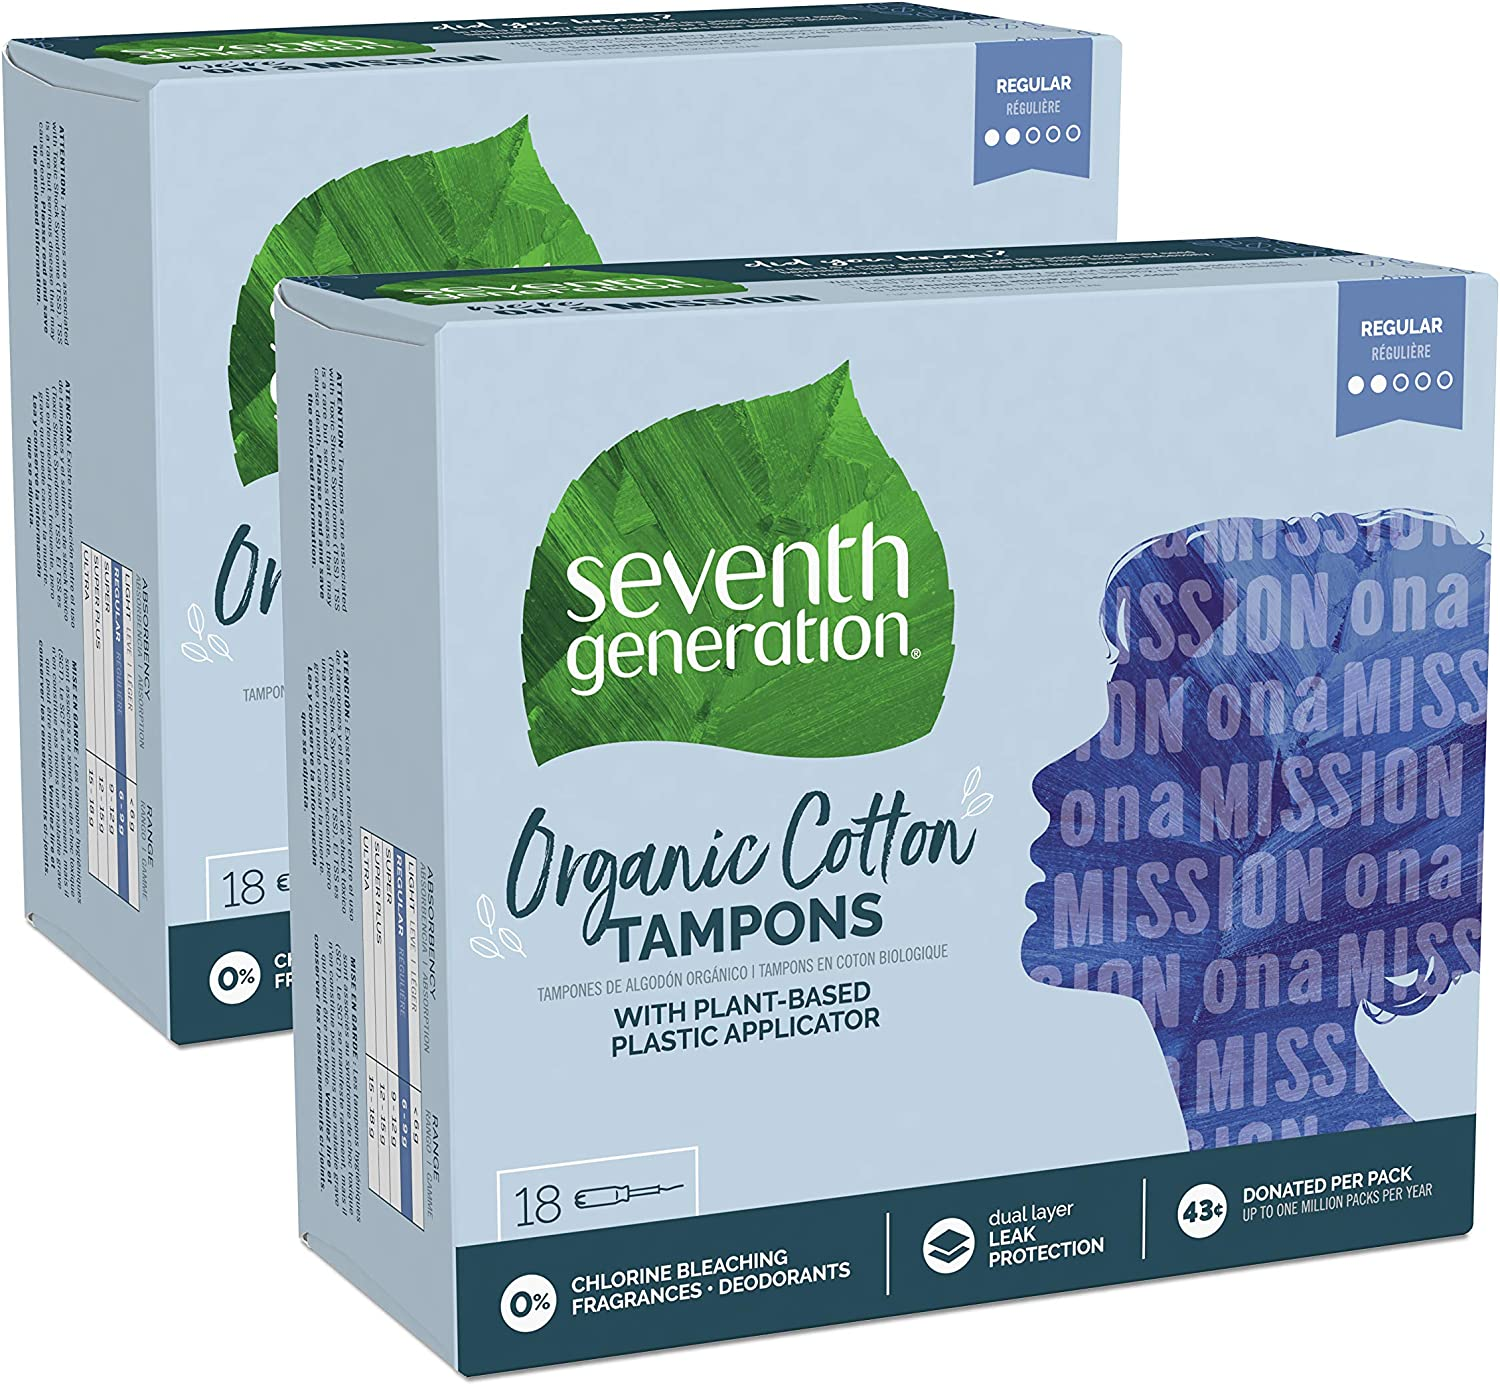 Seventh Generation Tampons with Comfort Applicator, Organic Cotton